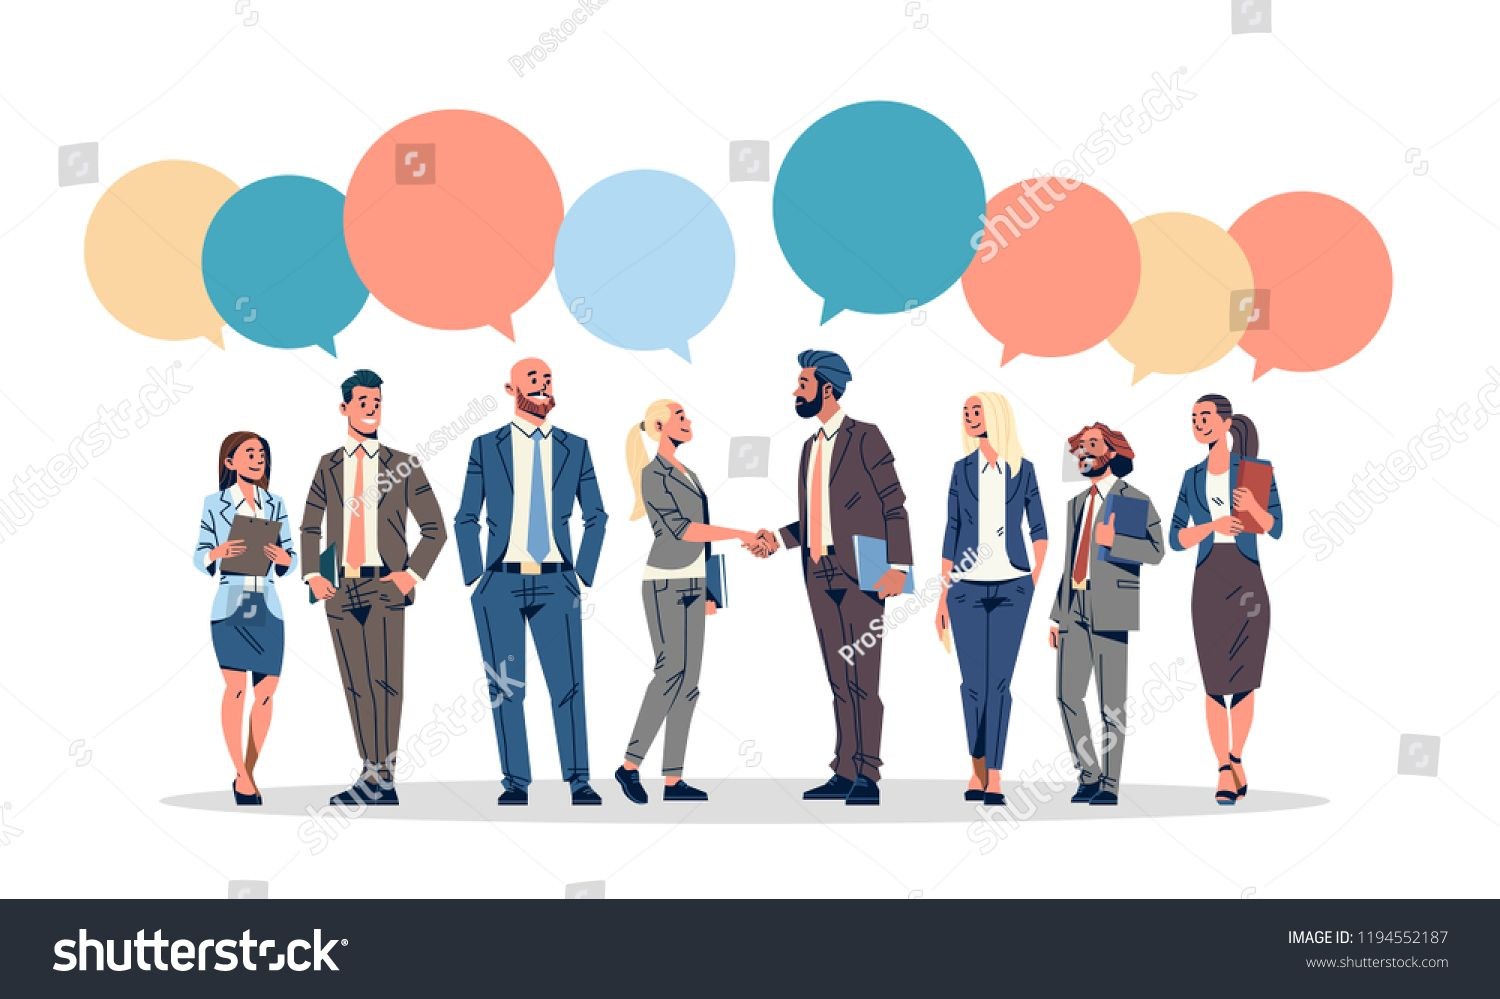 png black and white download Business people group chat. Vector bubble communication